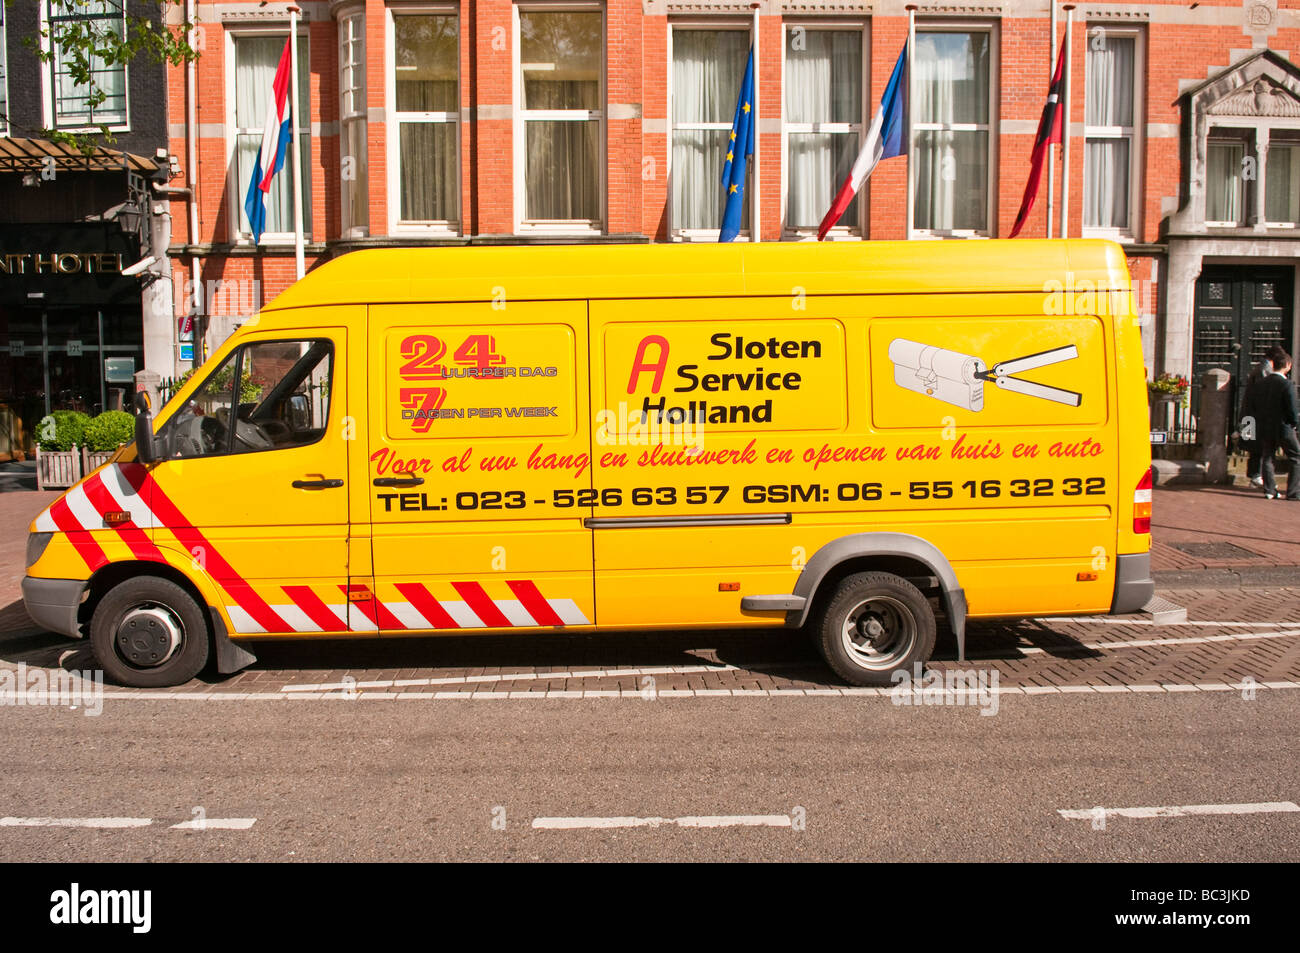 Locksmith van outside a hotel in Amsterdam - Stock Image